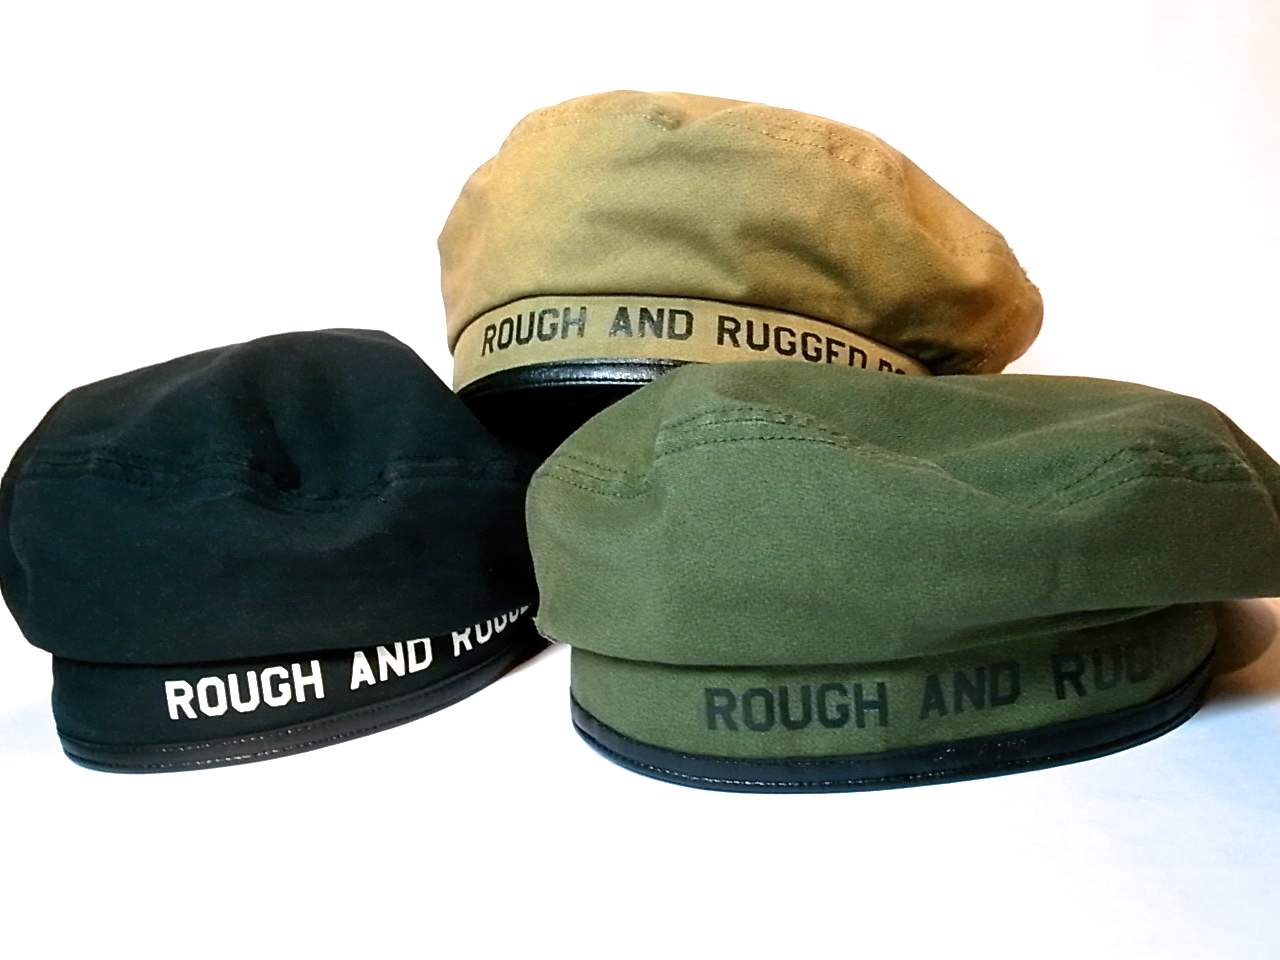 ROUGH AND RUGGED NEW ITEMS!!!!!_d0101000_13392993.jpg